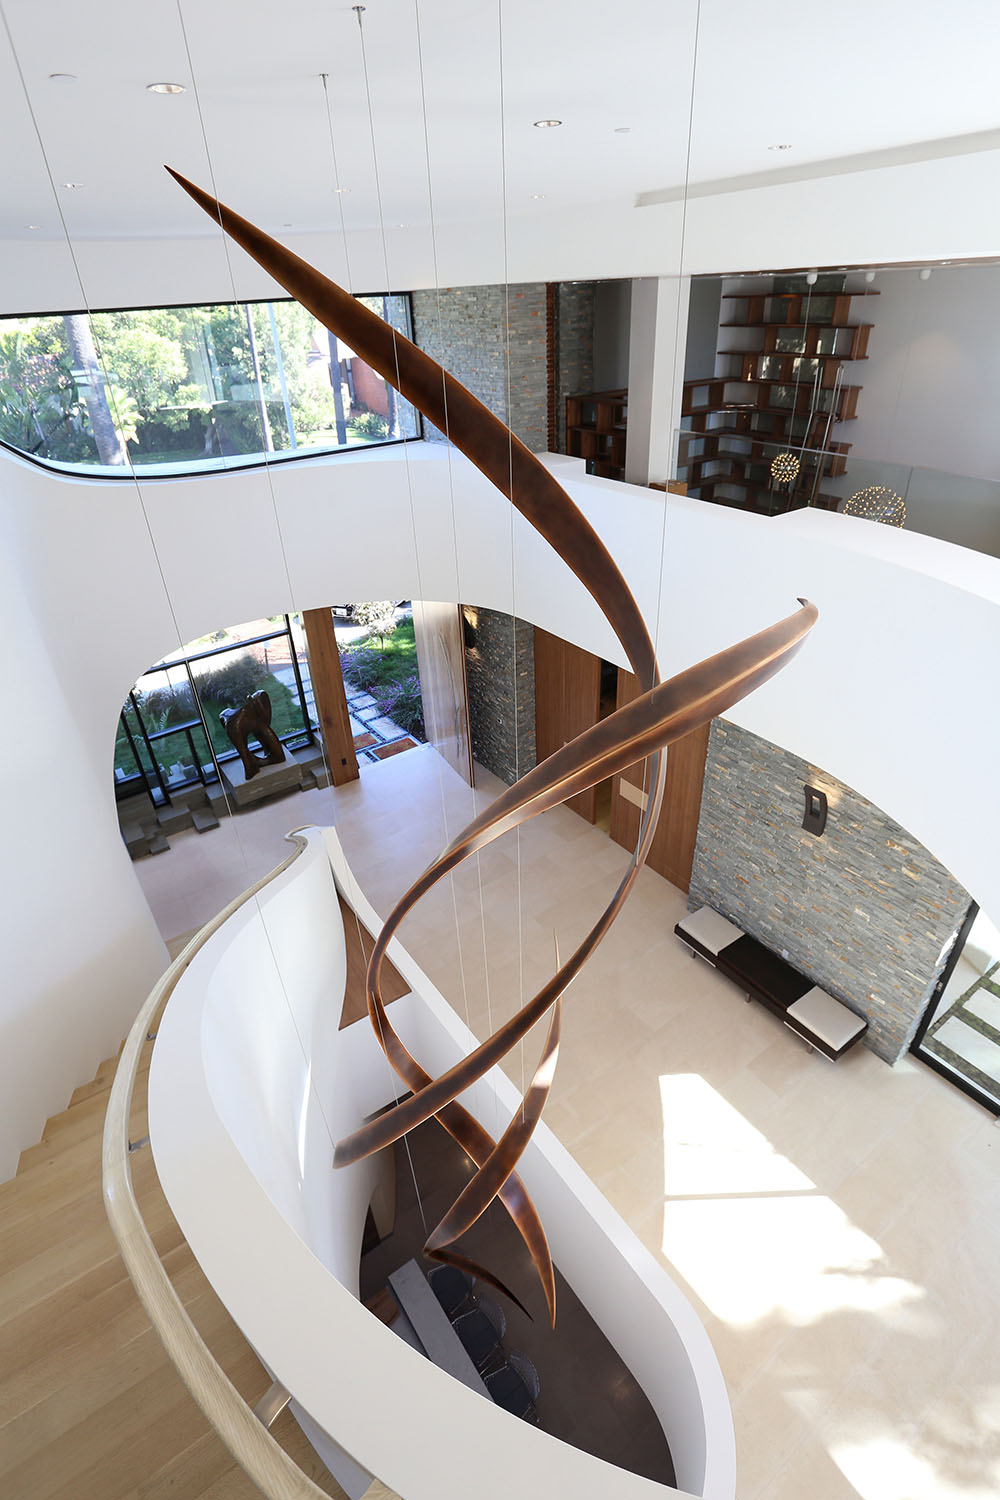 Passage , Bronze, 28'' x 8' x 8', 2017, Private Residence, Beverly Hills, CA